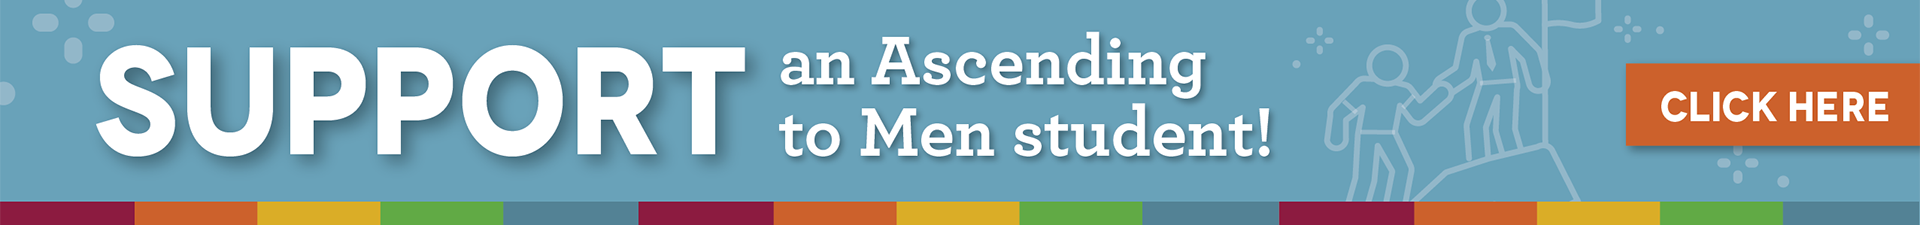 Support an Ascending to Men Student. Click Here.